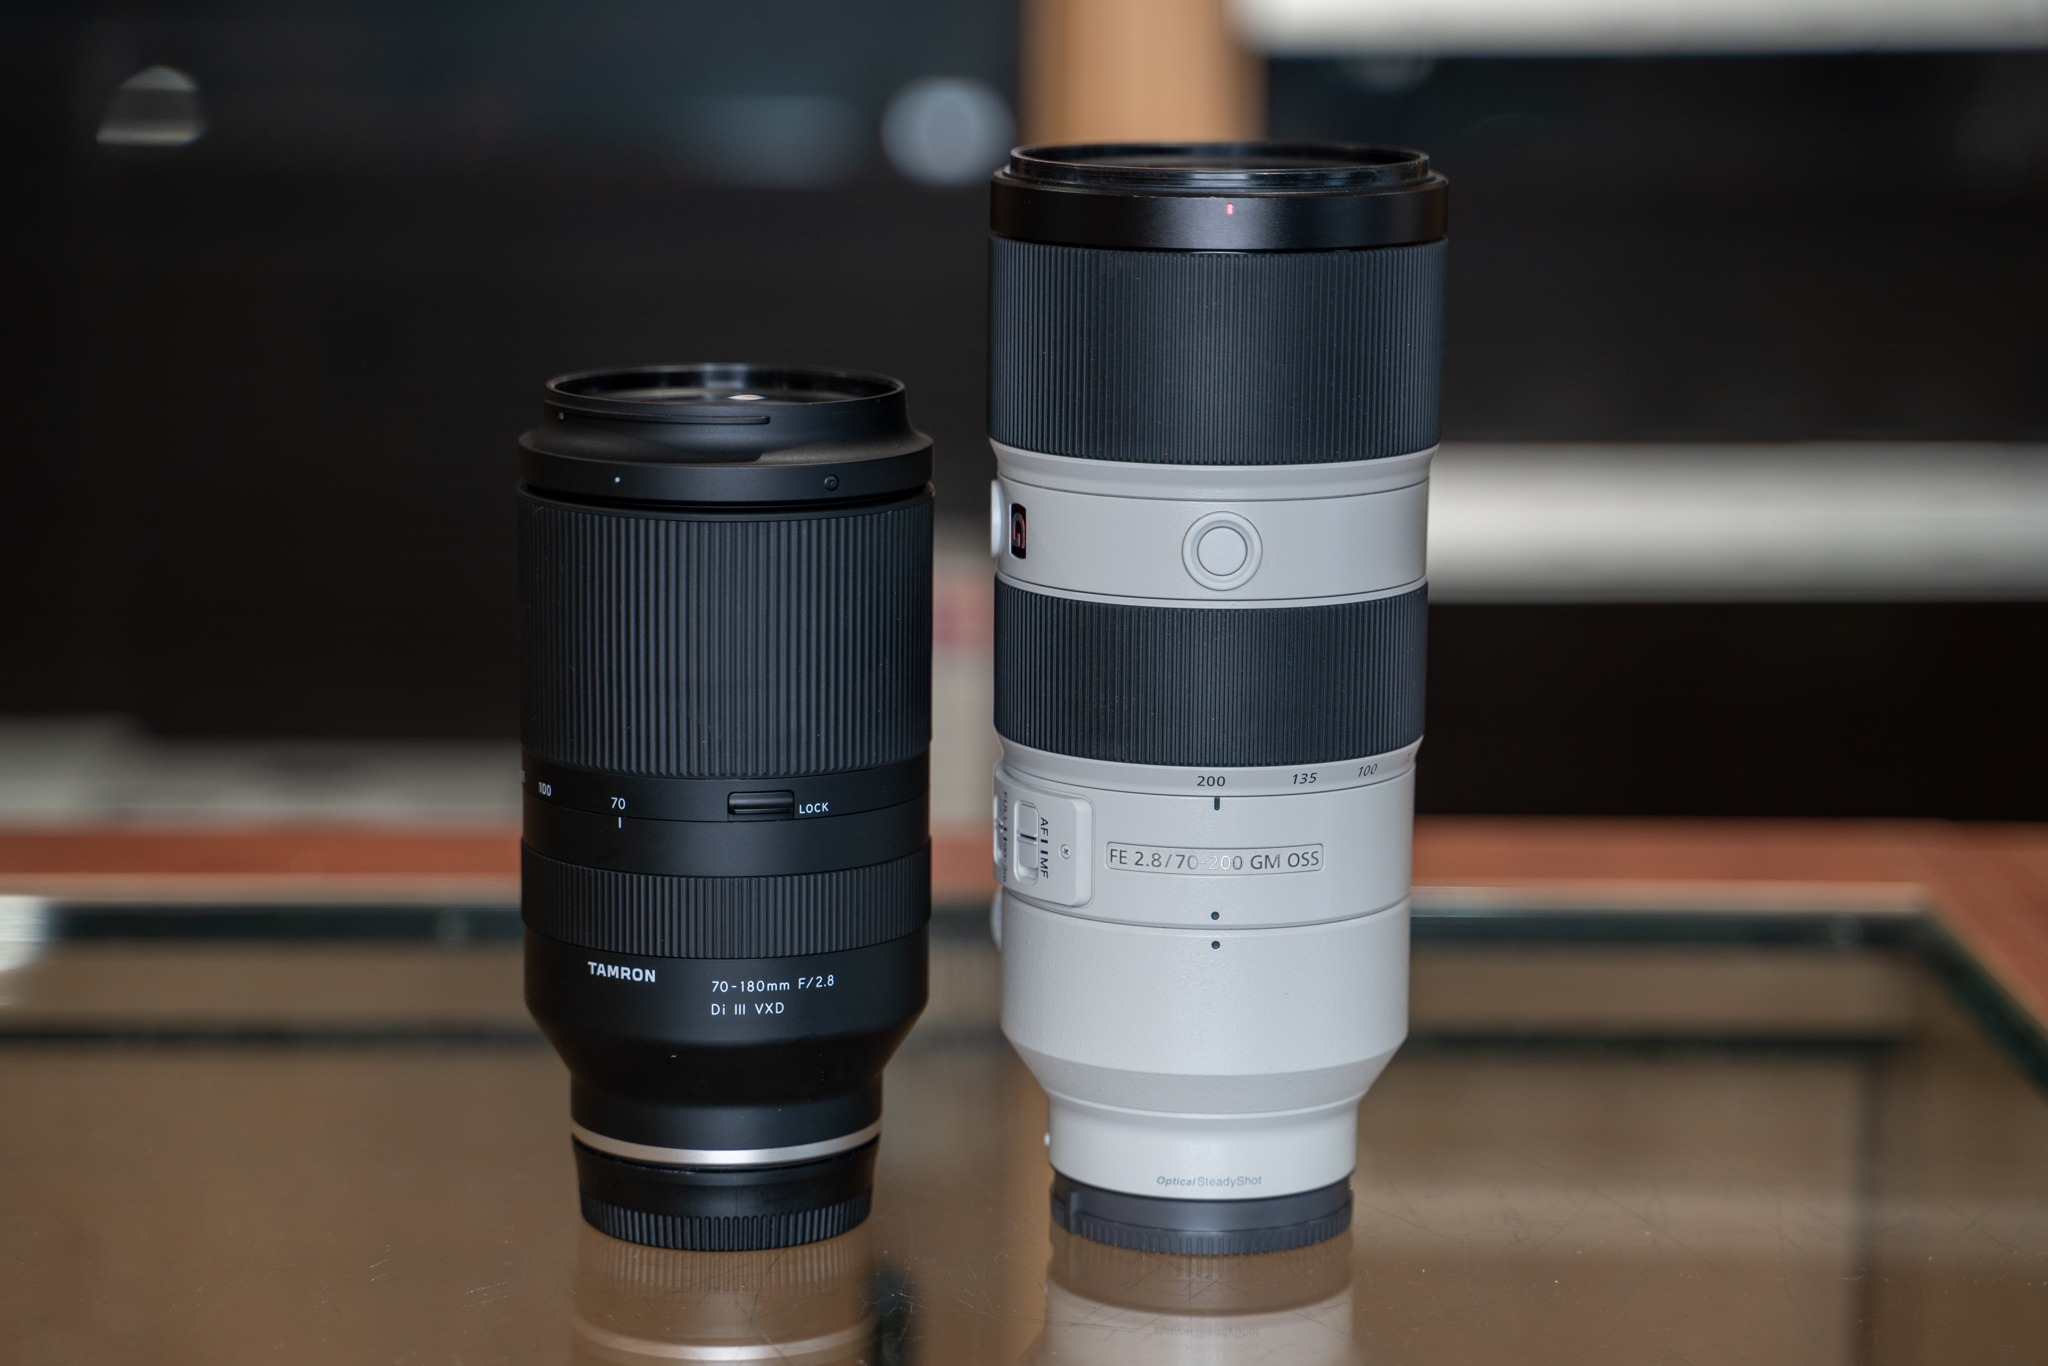 Tamron 70-180mm f/2.8 for Sony FE - The Ultimate Fast Zoom for Sony?